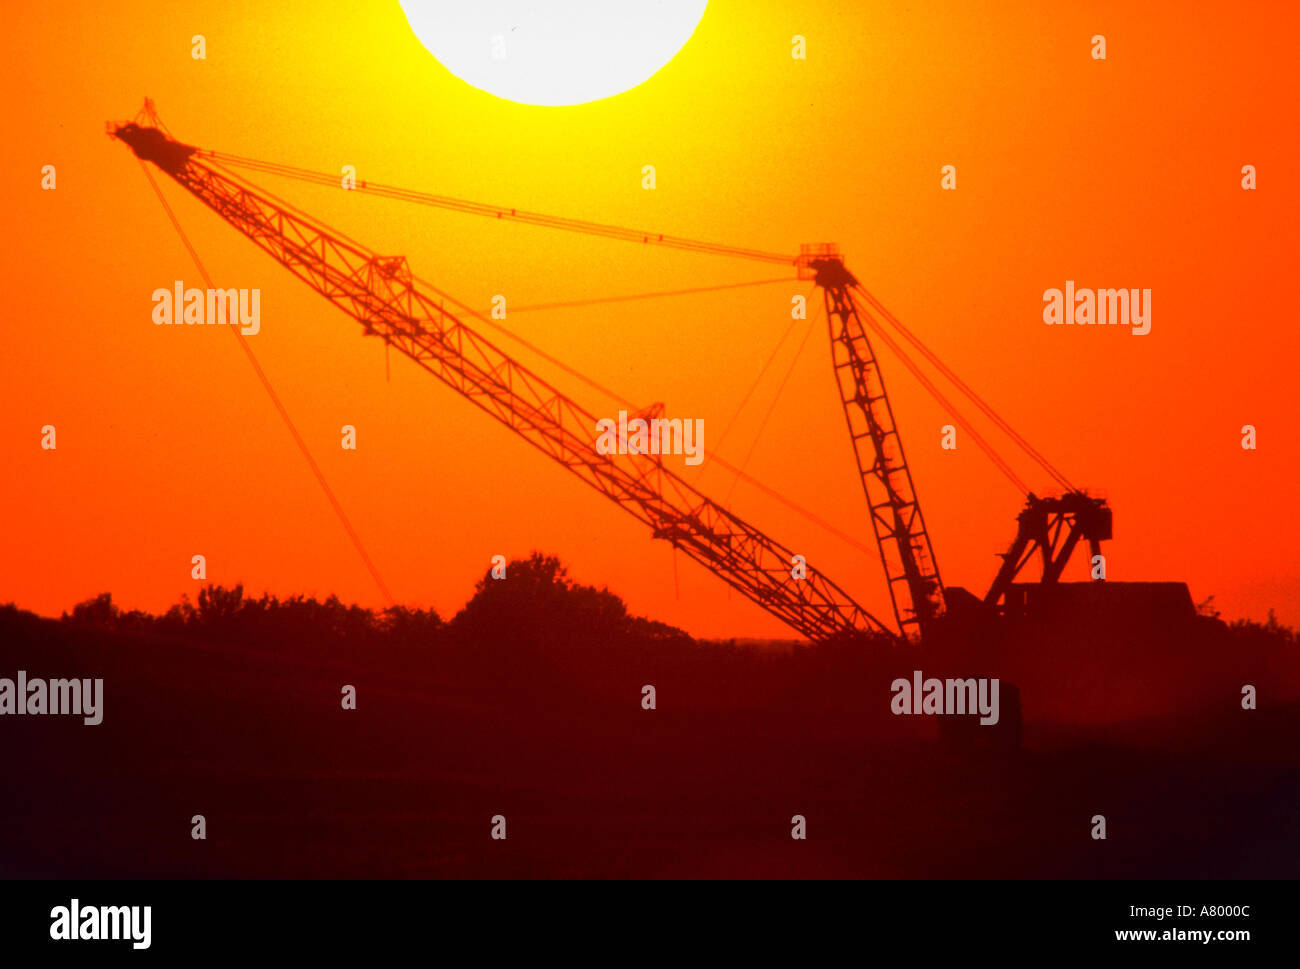 Sunset silhouette of giant dragline at Texas coal strip mine - Stock Image